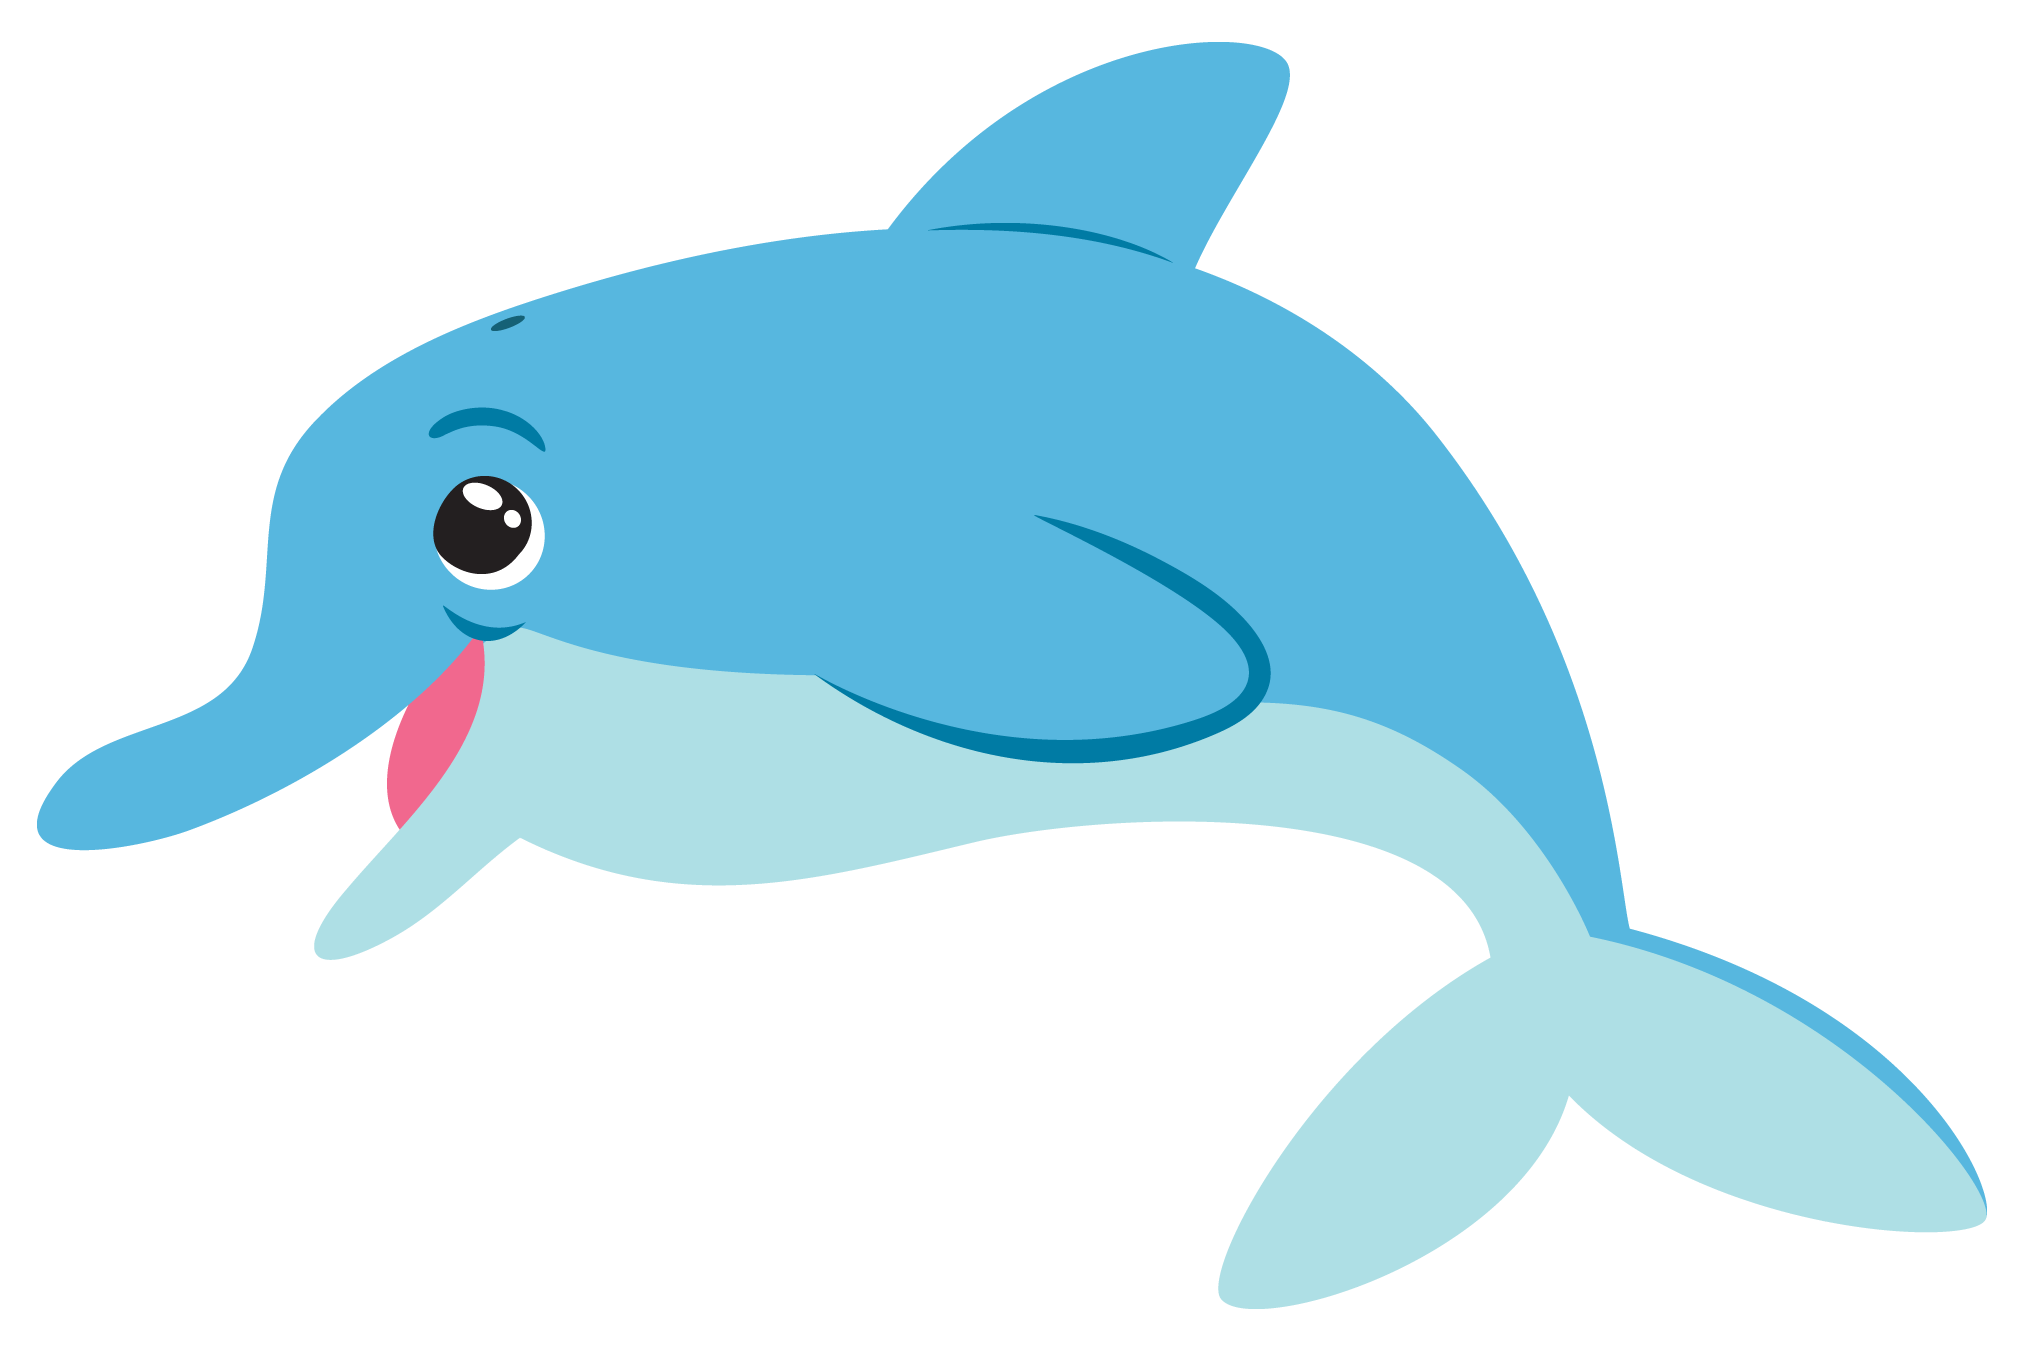 Seahorse clipart cute baby dolphin #1